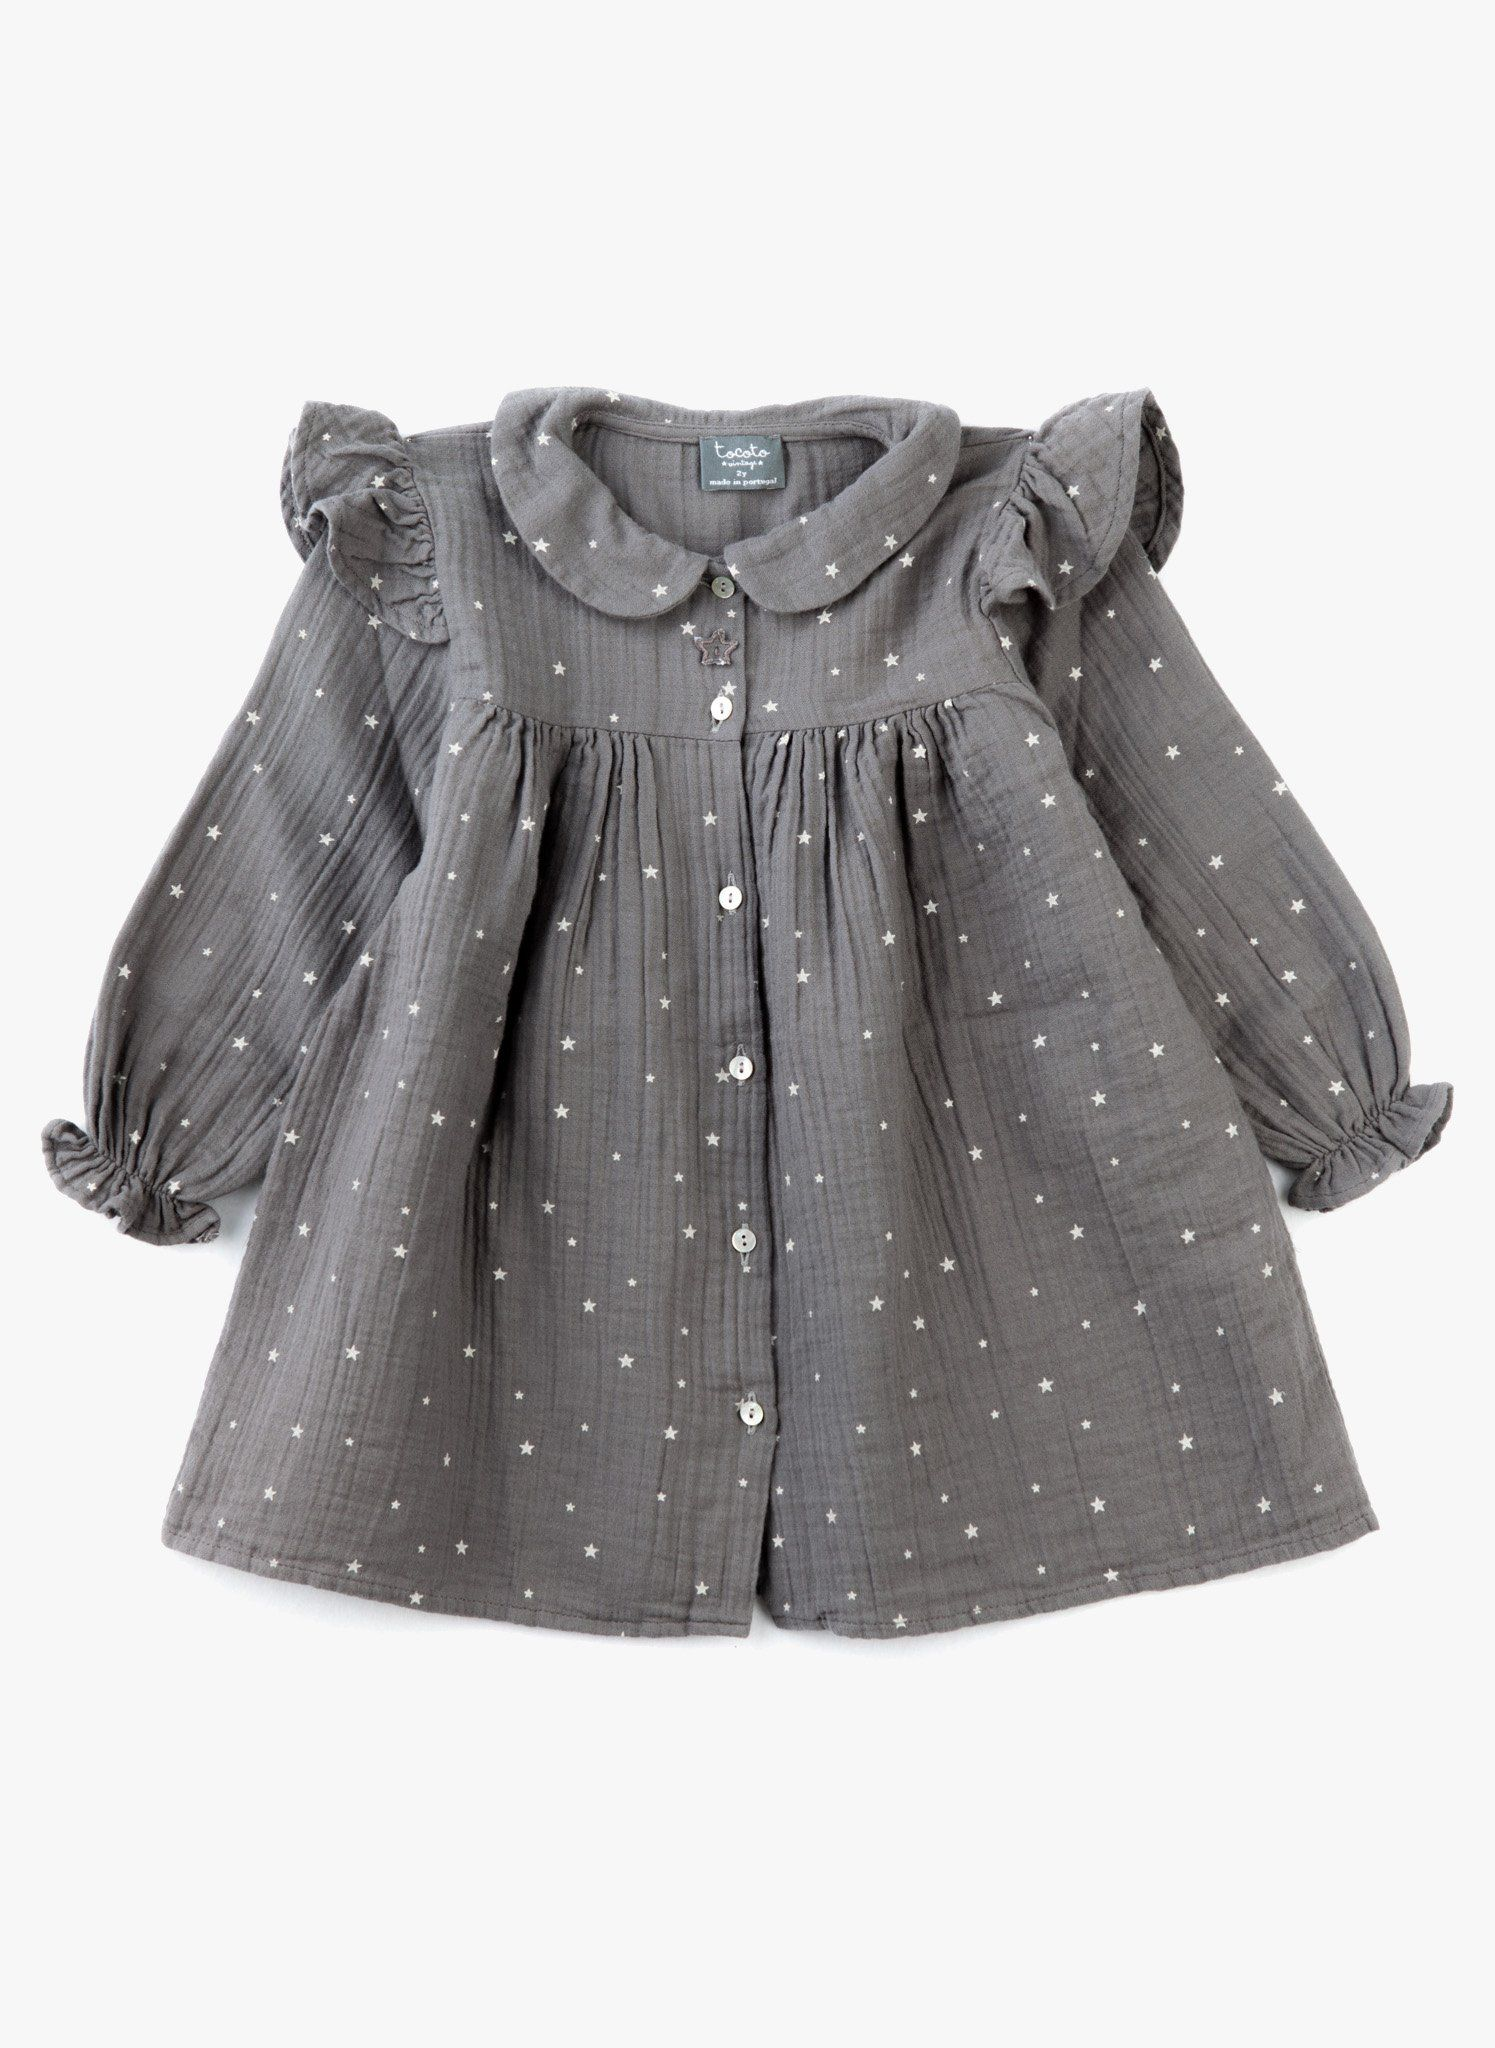 1afd2eec6 Tocoto Vintage Baby  Little Girl Star Dress in Grey - FINAL